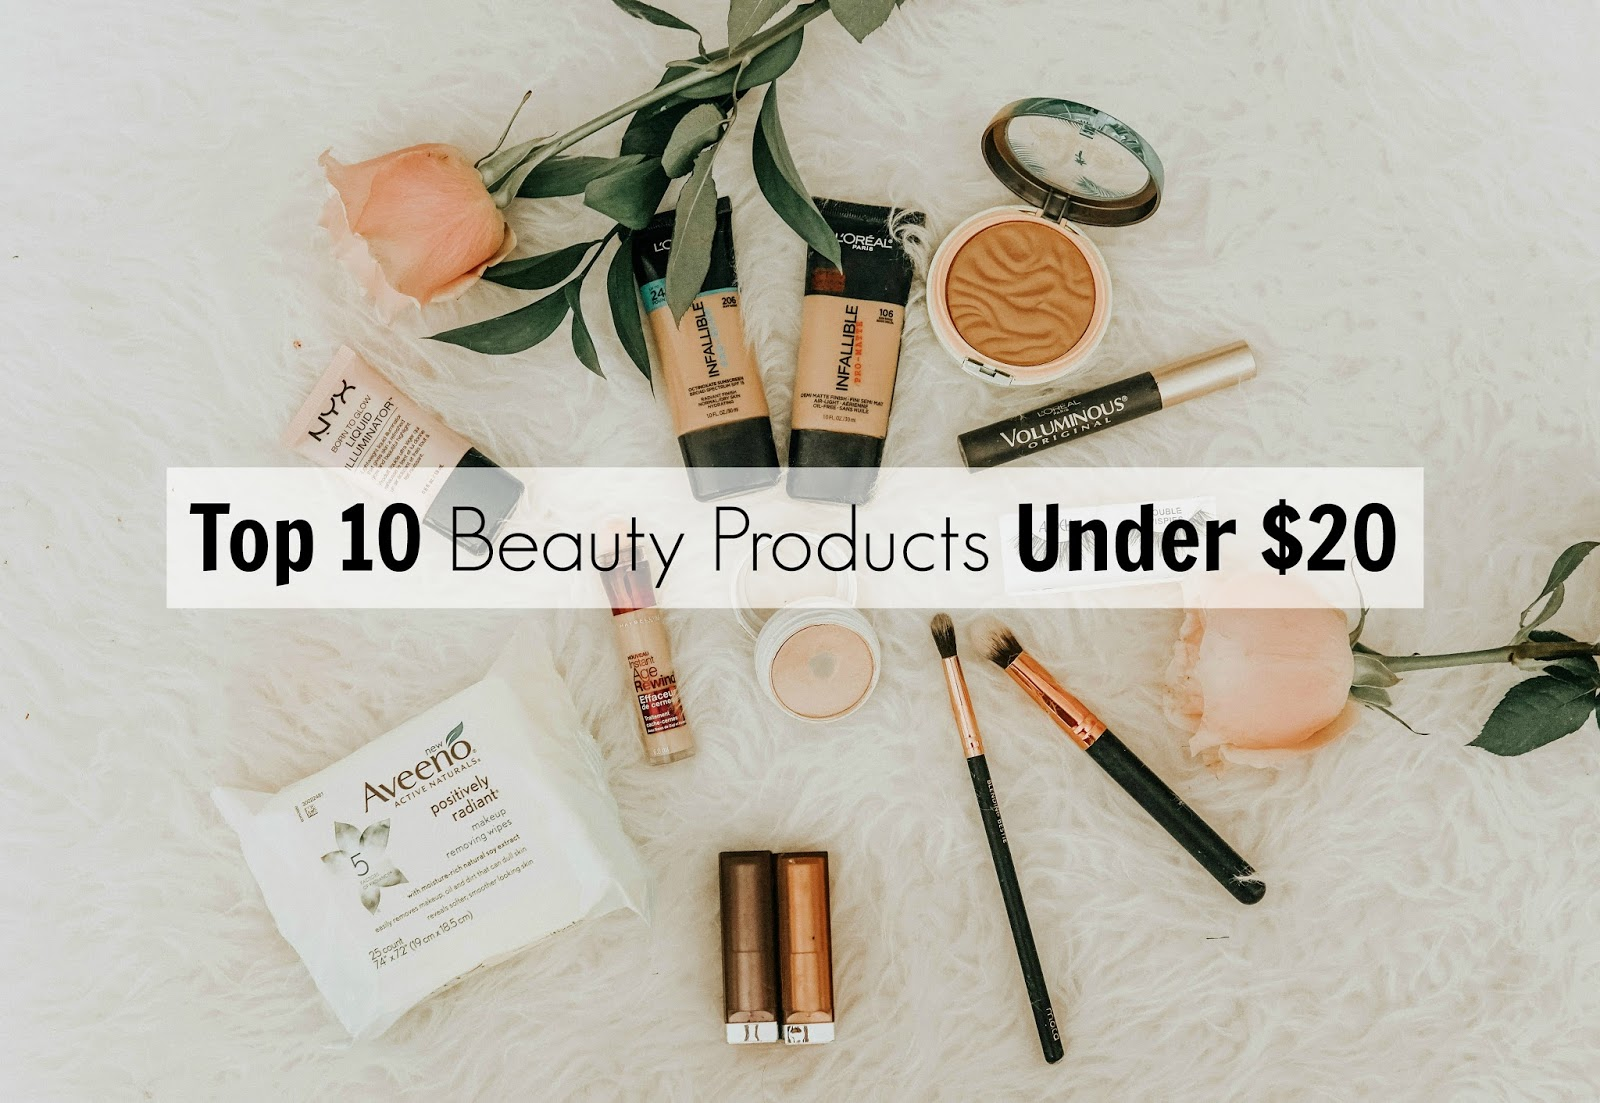 Top Ten Beauty Products Under $20